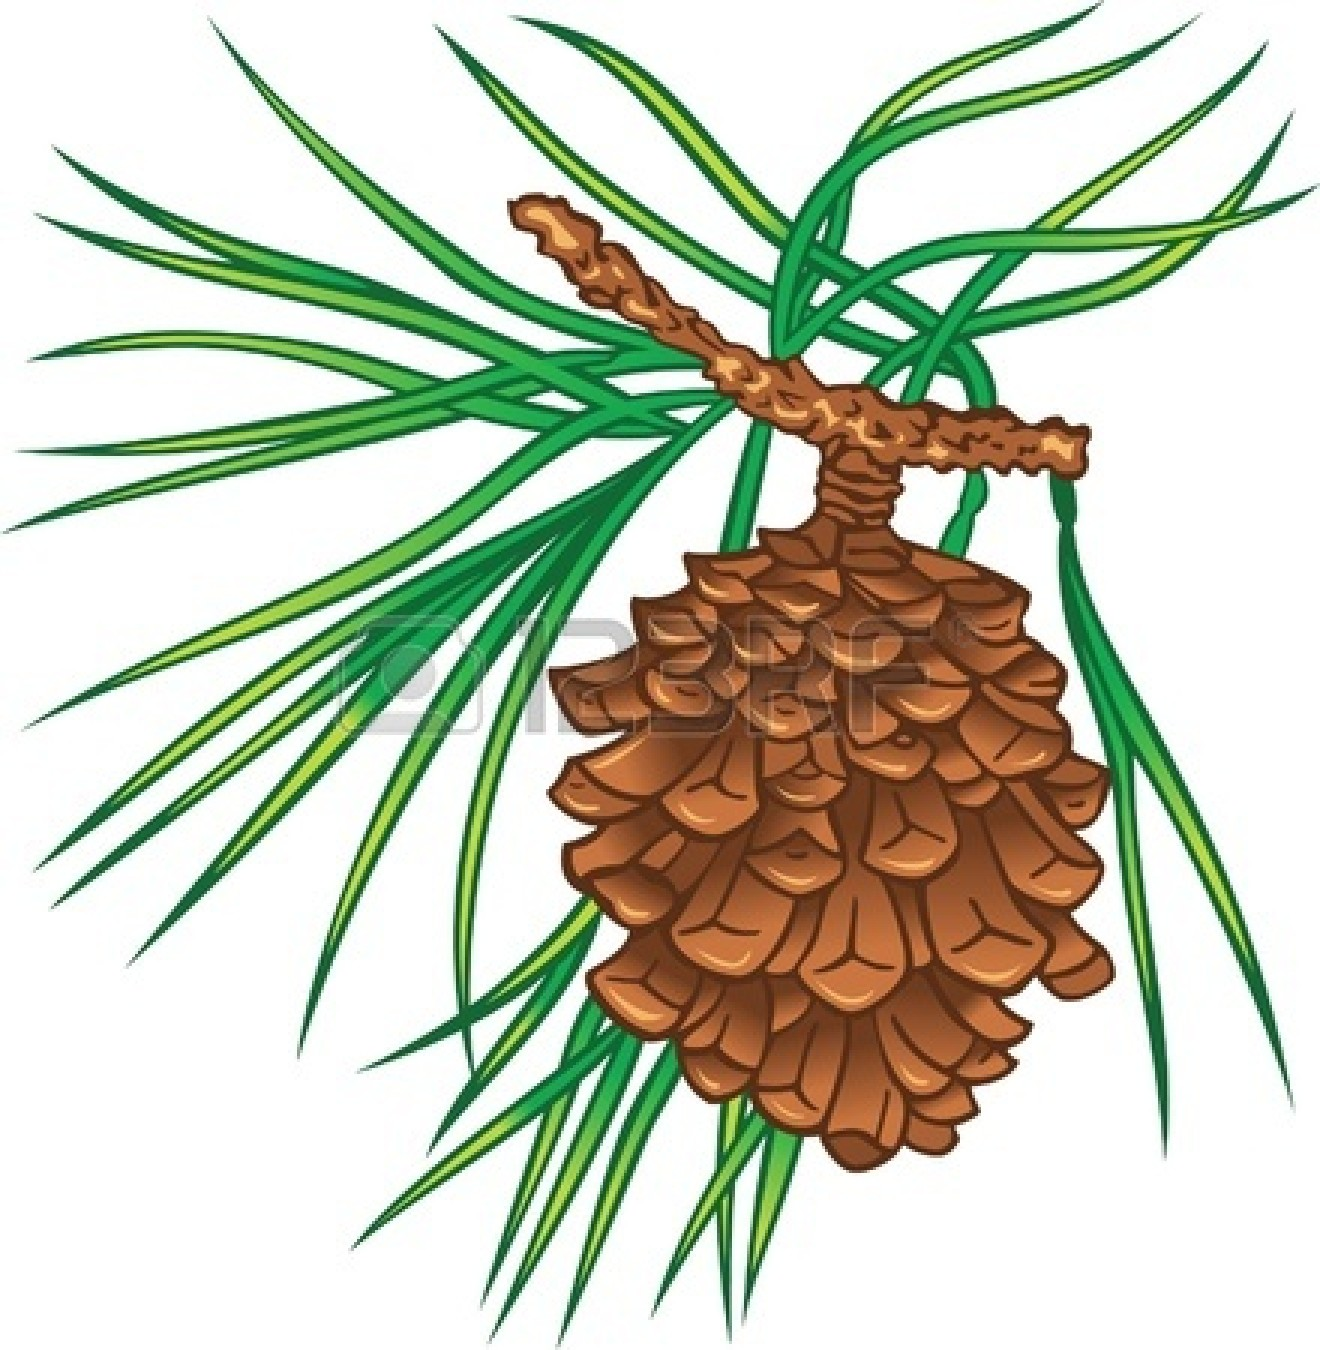 hight resolution of 1320x1350 pine clipart pine tree branch